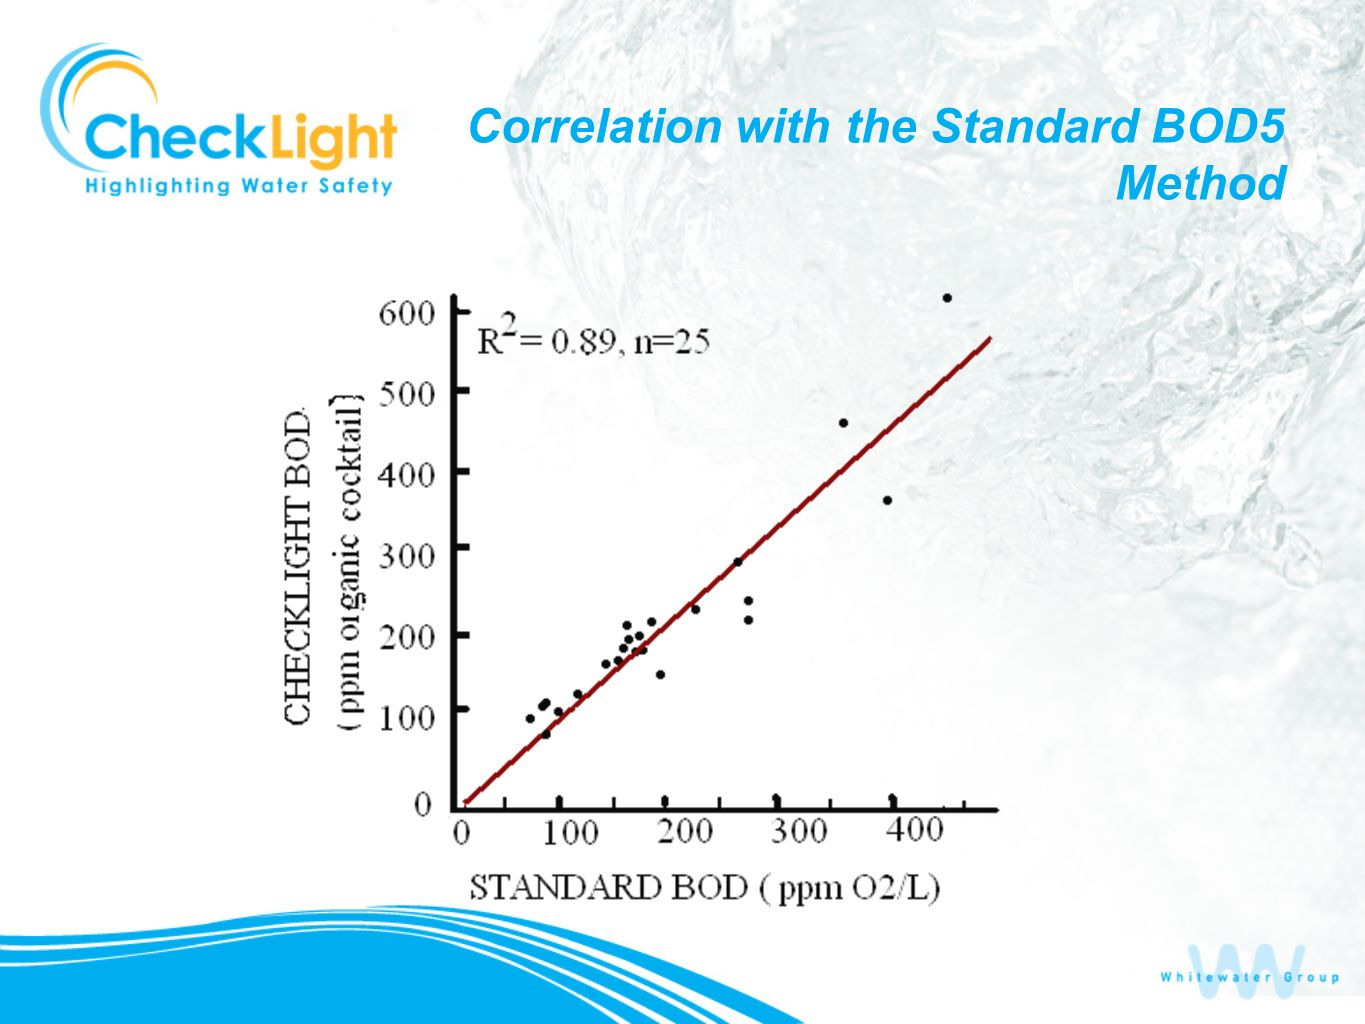 Correlation with the Standard BOD5 Method